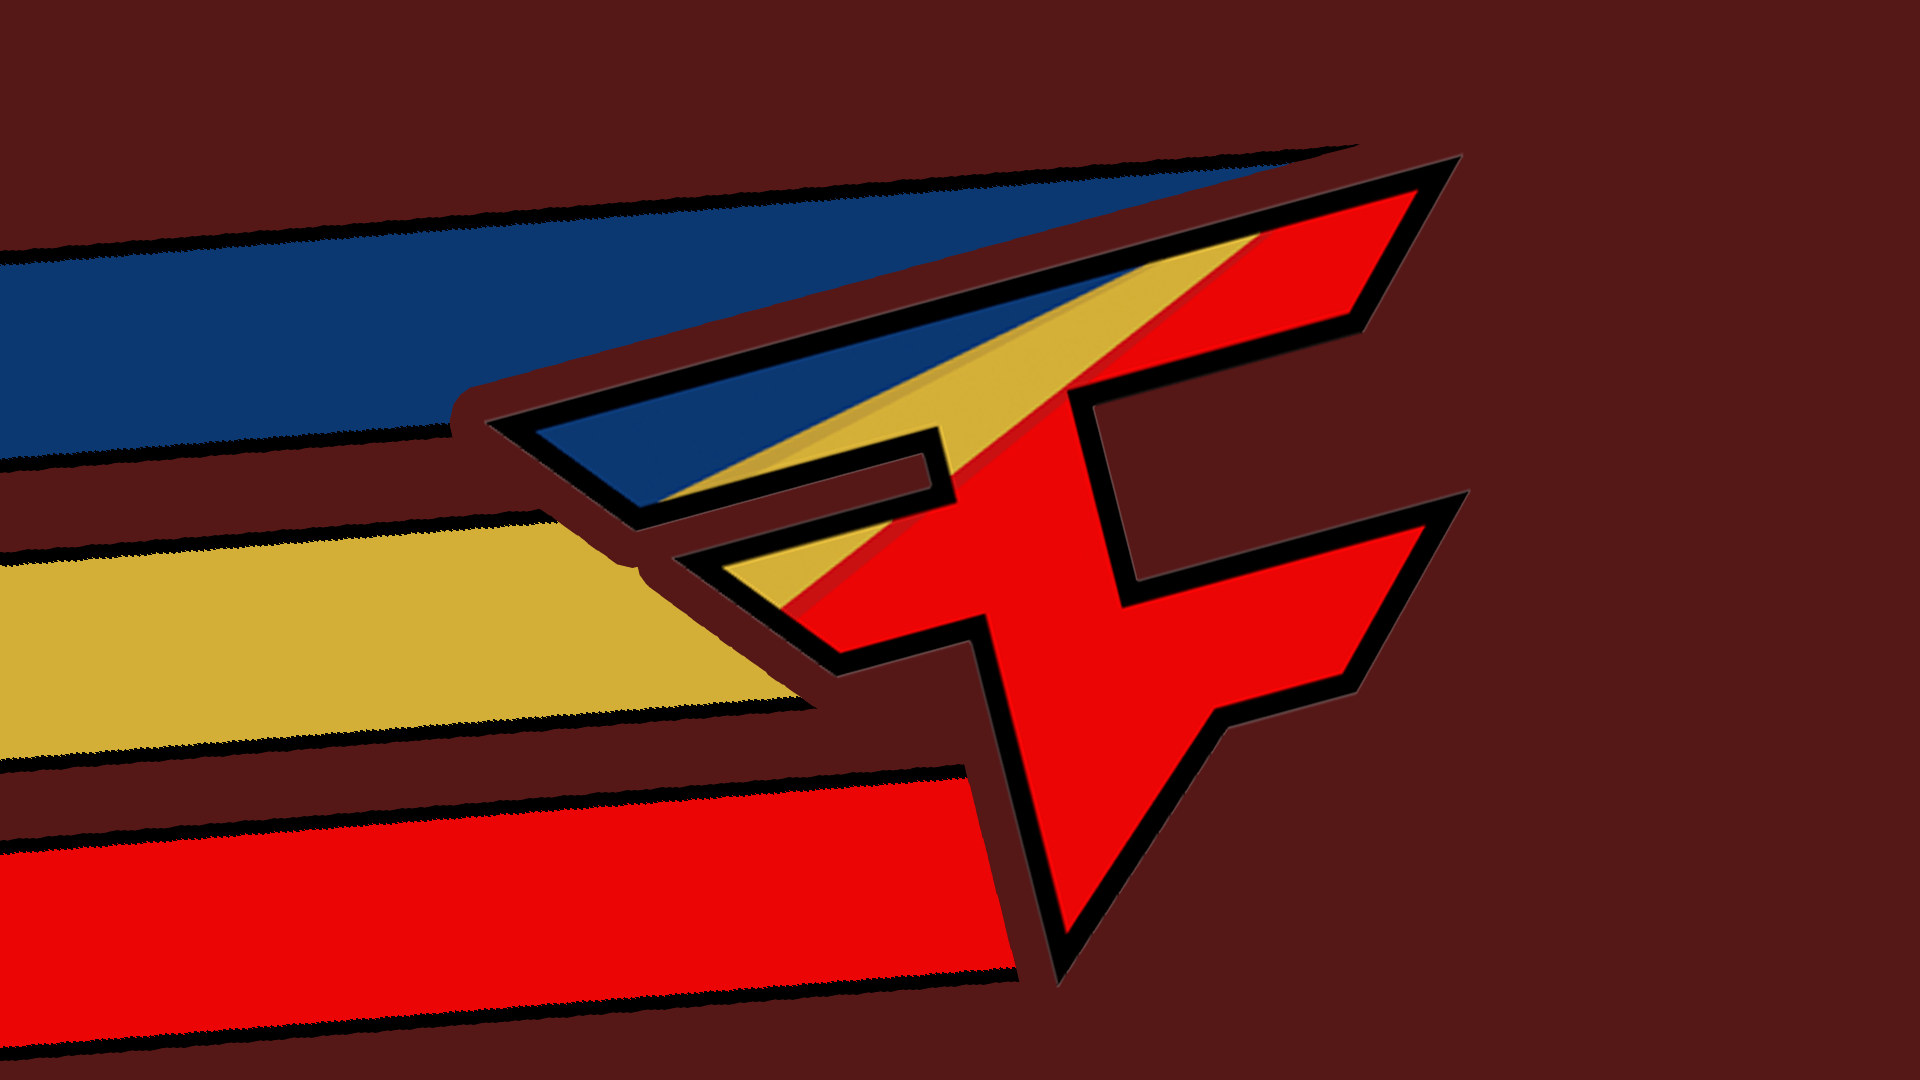 Android Wallpaper Hd 1080p Faze Adidas Cs Go Wallpapers And Backgrounds